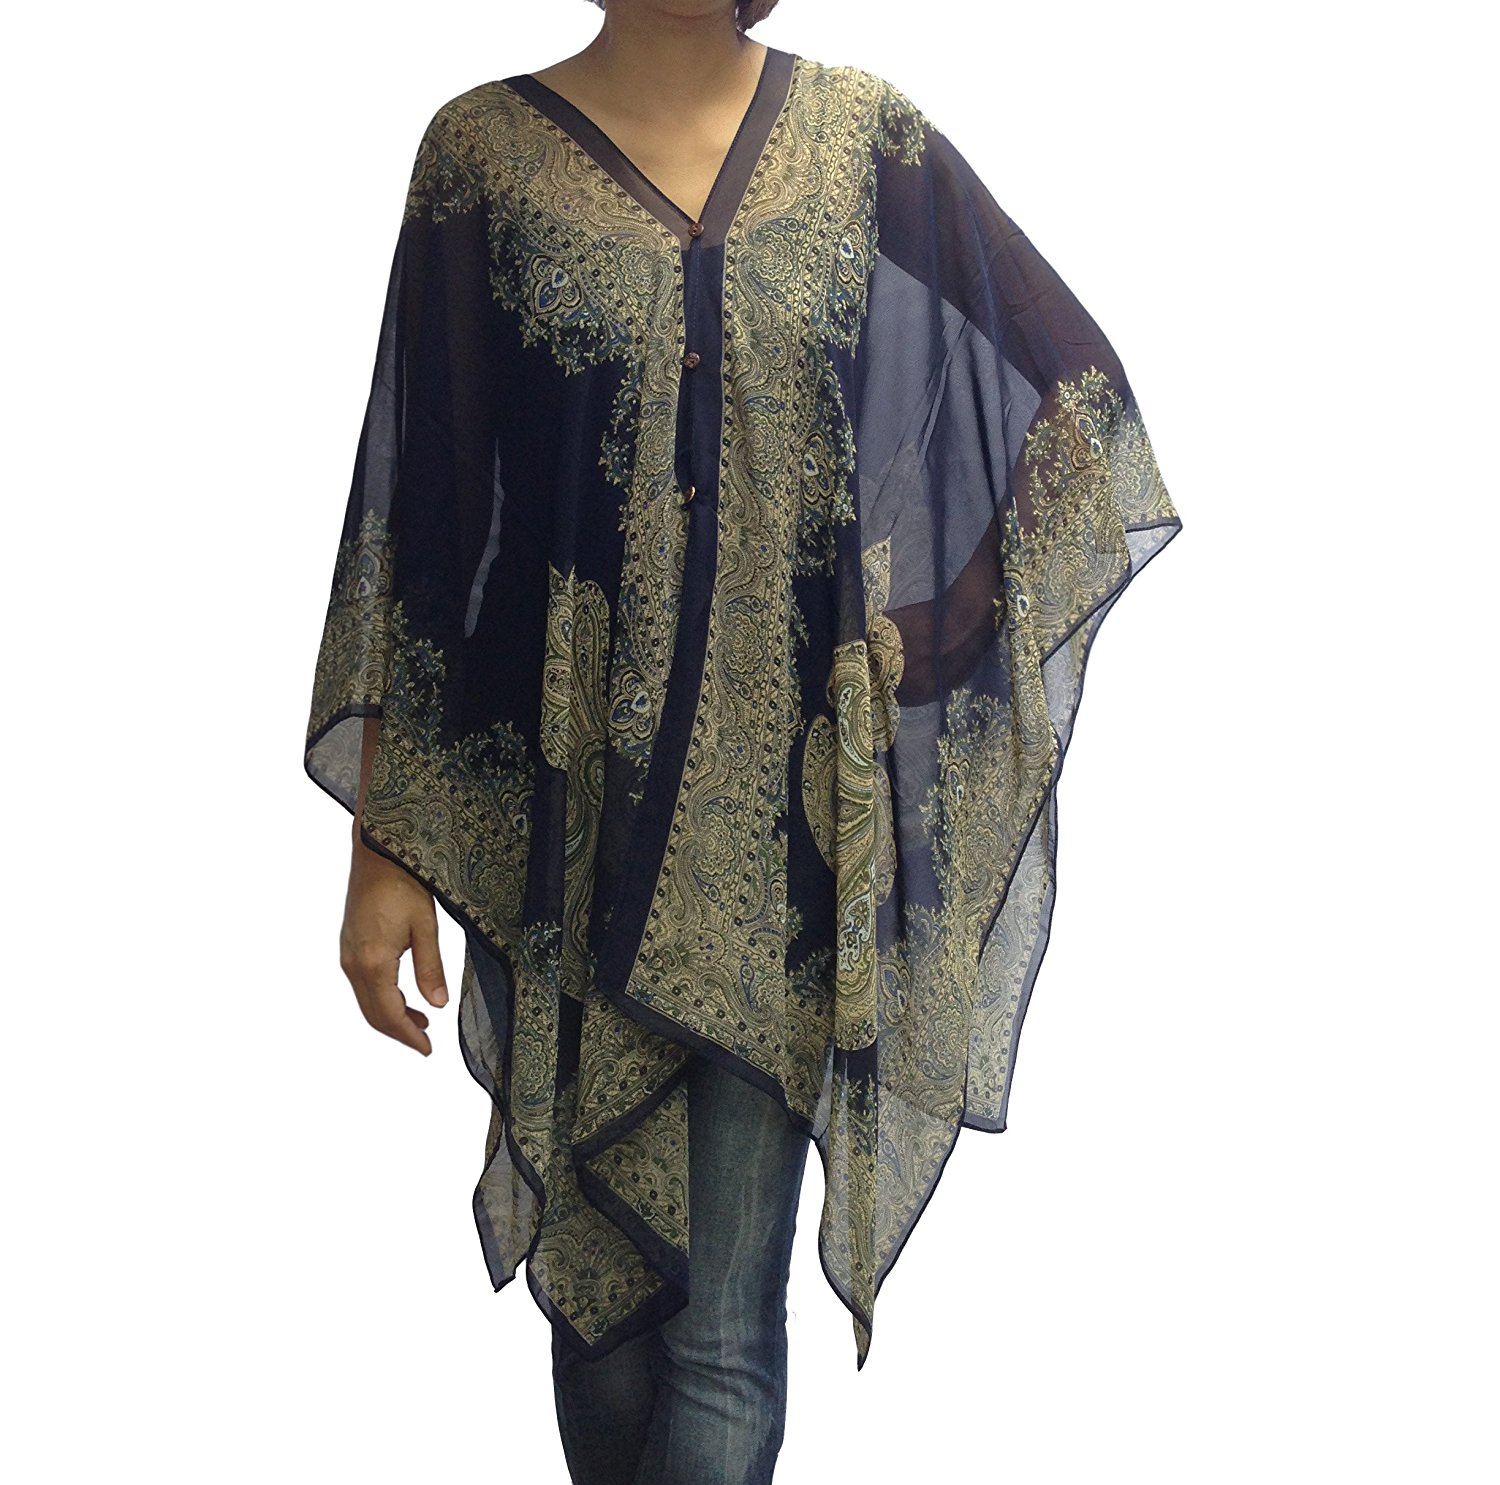 4e3f6cb936 Get Quotations · Scarf Caftan Tunic Poncho Cover-up, Paisley Print, Shawl ,  Dark Blue Color